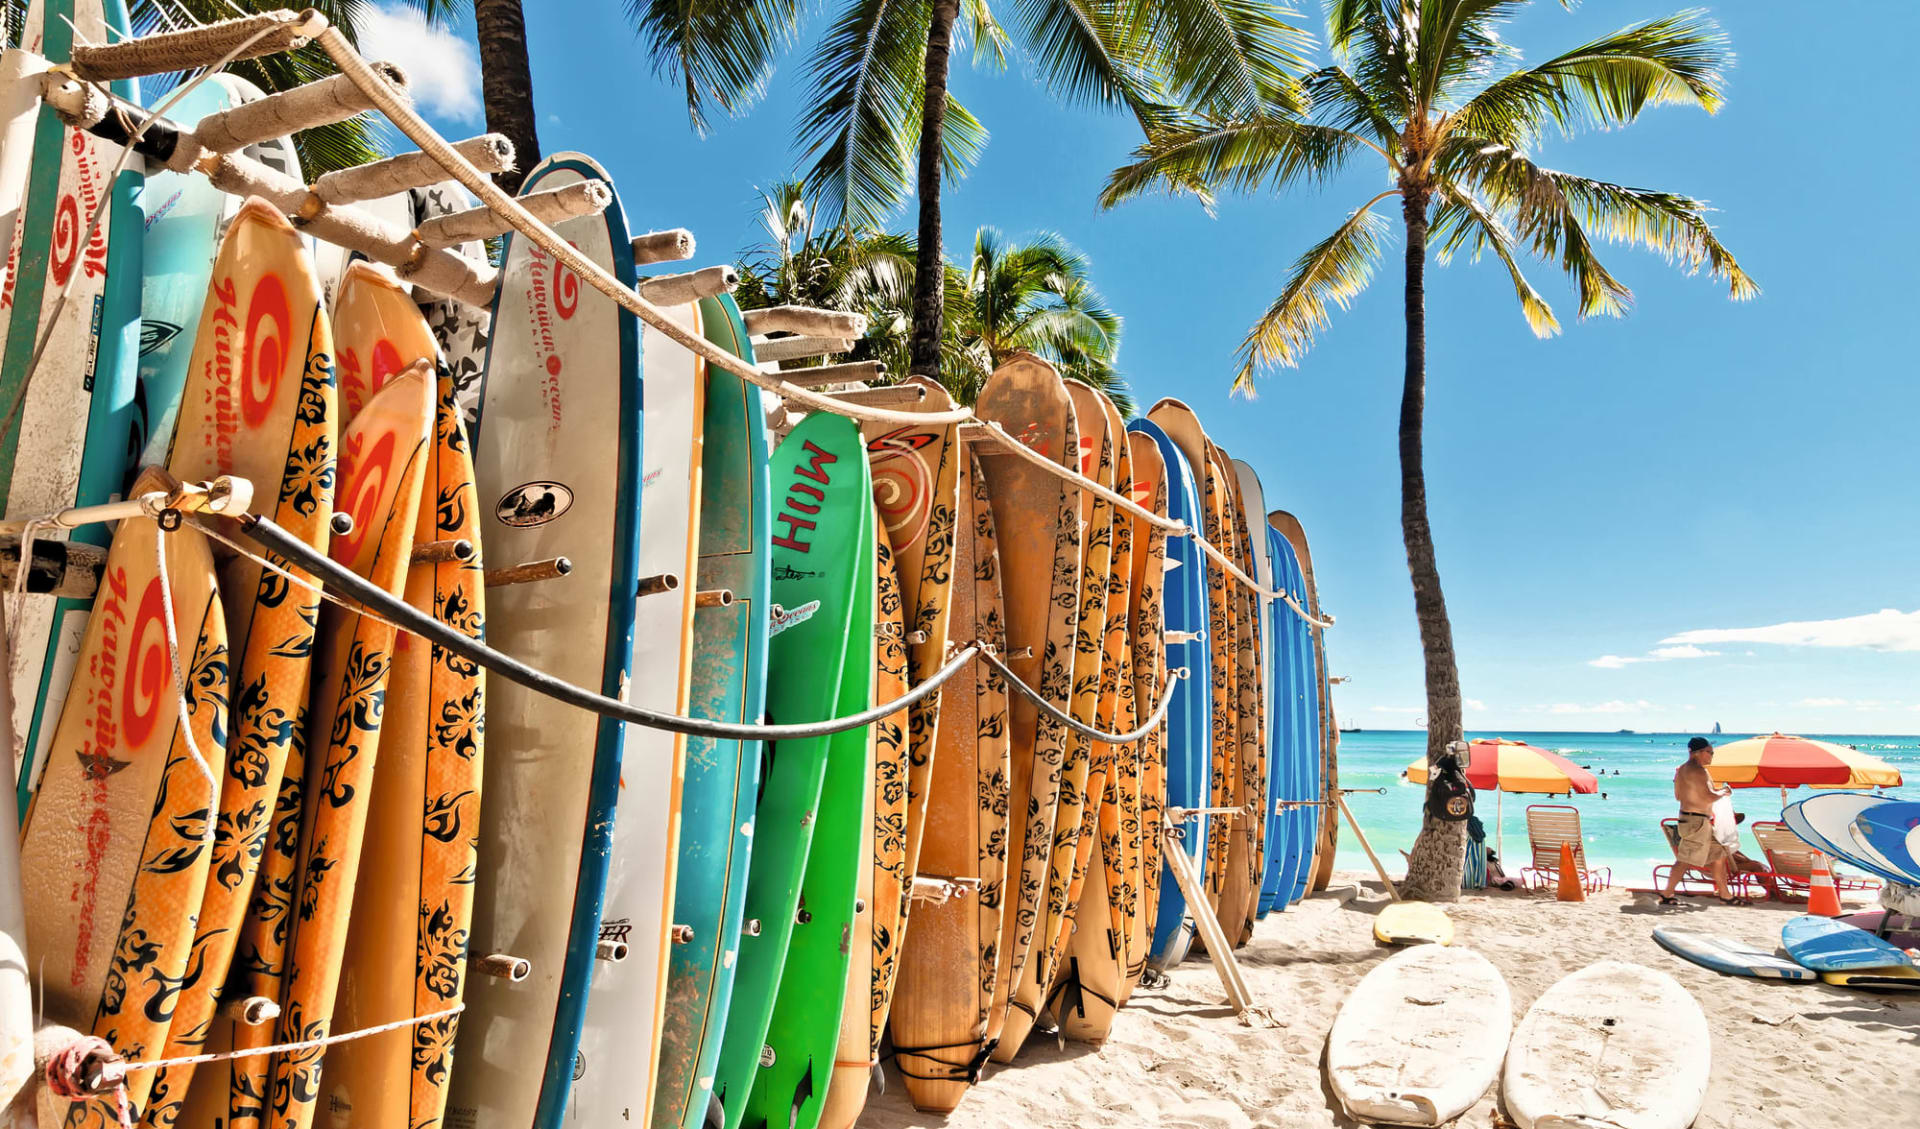 Hawaii Island Hopping ab Honolulu - Oahu: Hawaii - Waikiki Beach - Surfbretter